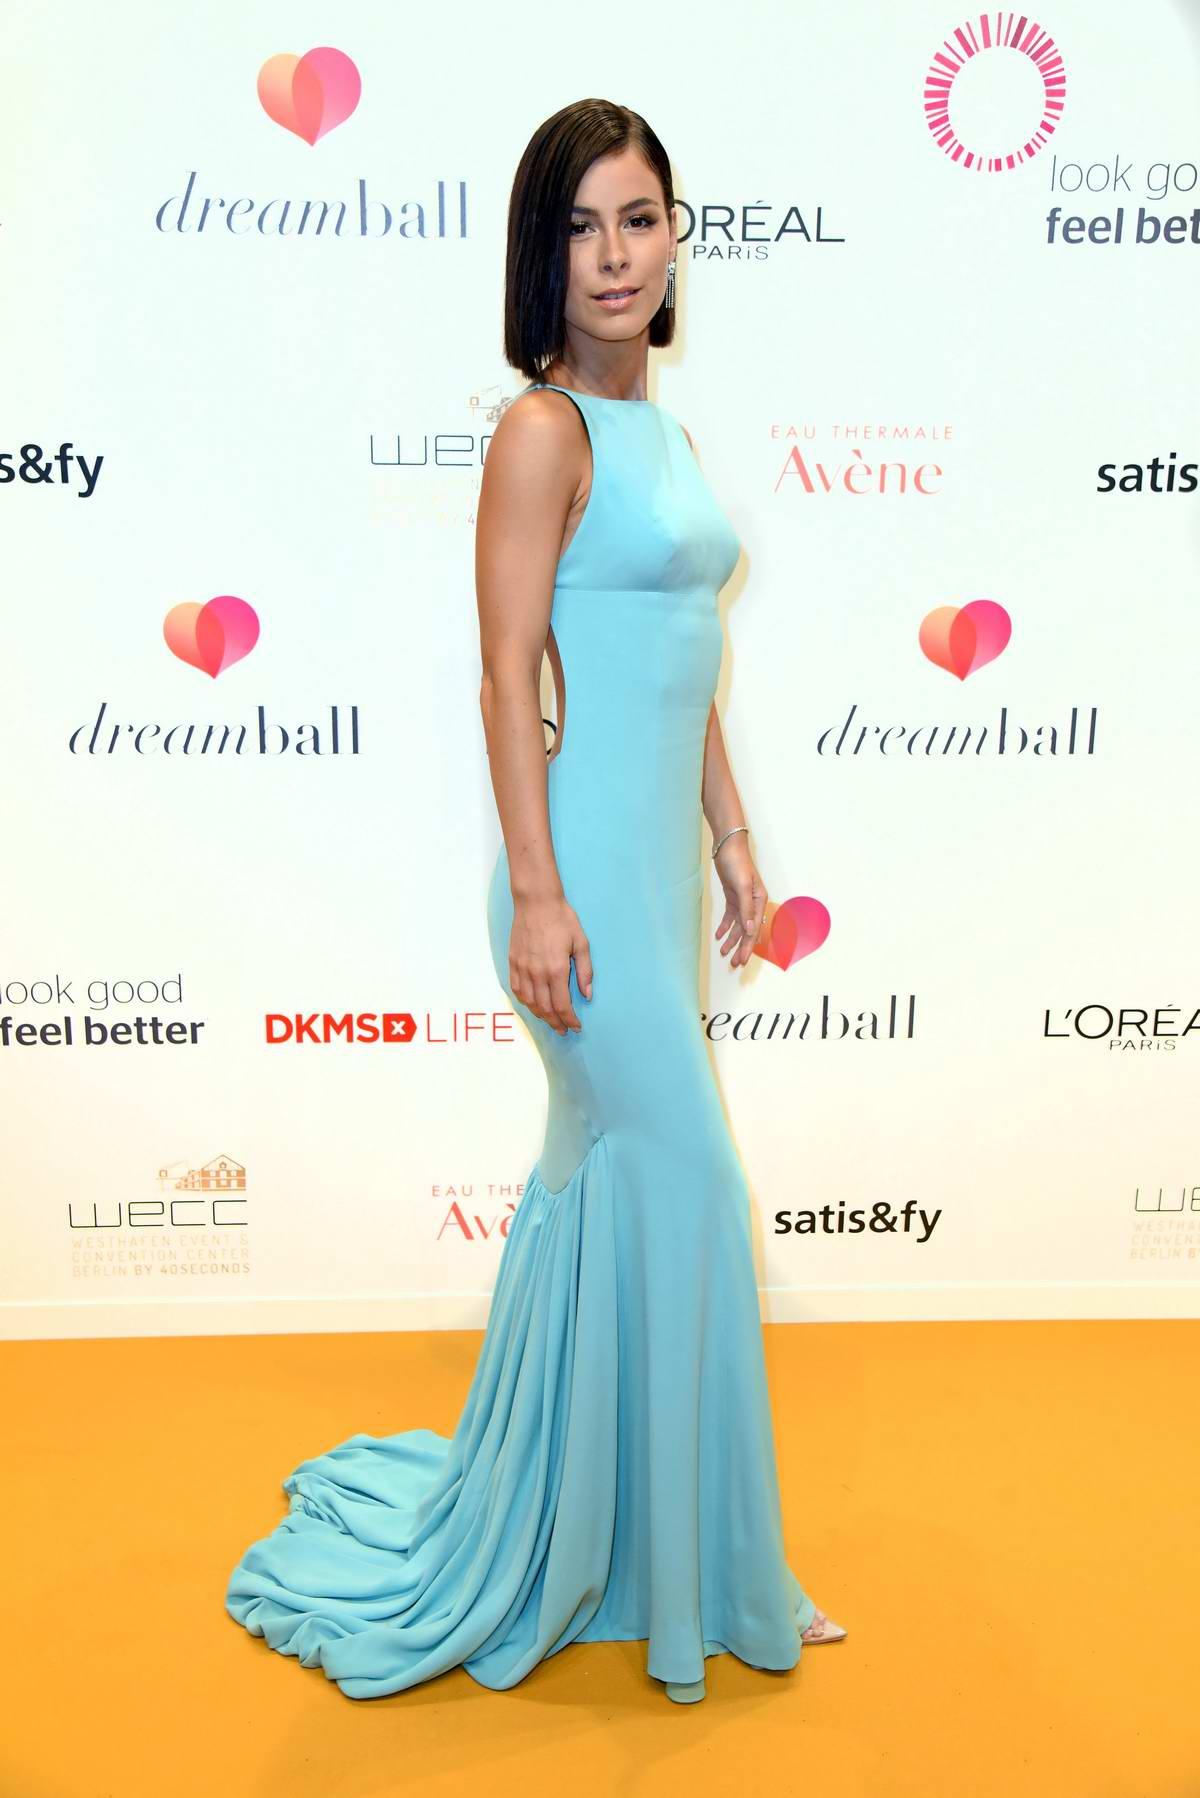 Lena Meyer-Landrut attends Dreamball 2018 at WECC - Westhafen Event & Convention Center in Berlin, Germany